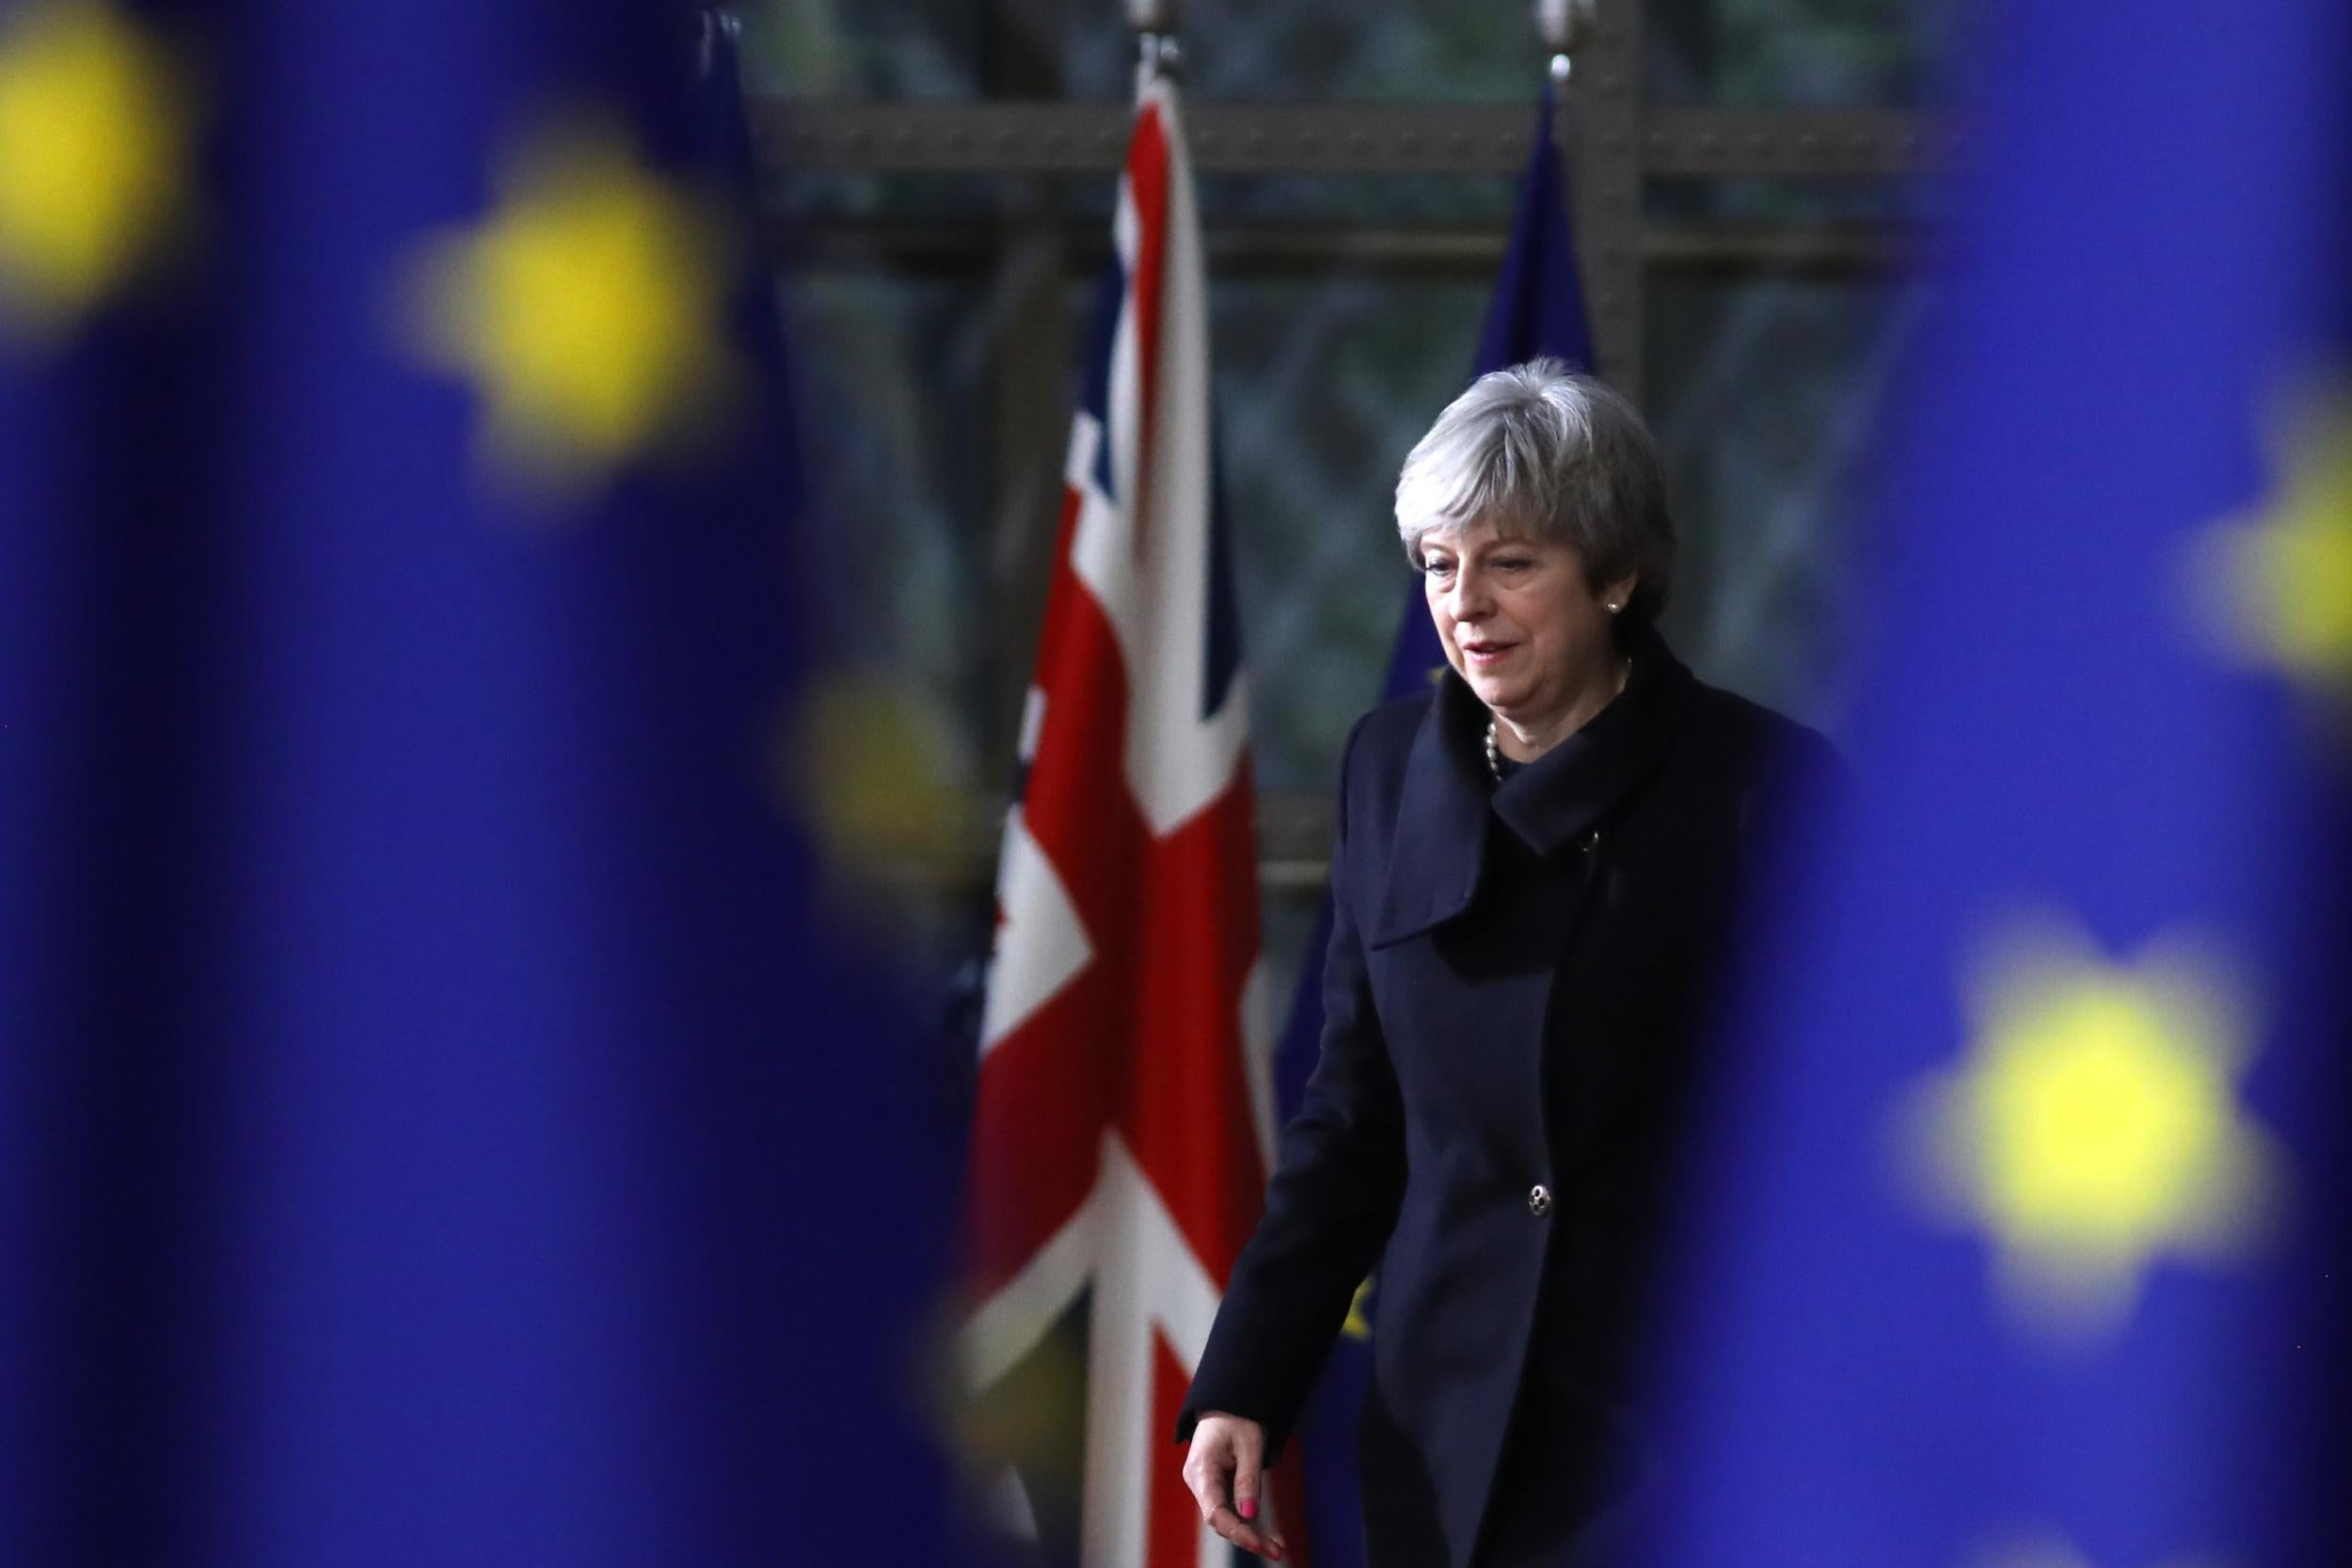 Theresa May has not asked EU leaders for sanctions against Russia in response to Salisbury nerve agent attack